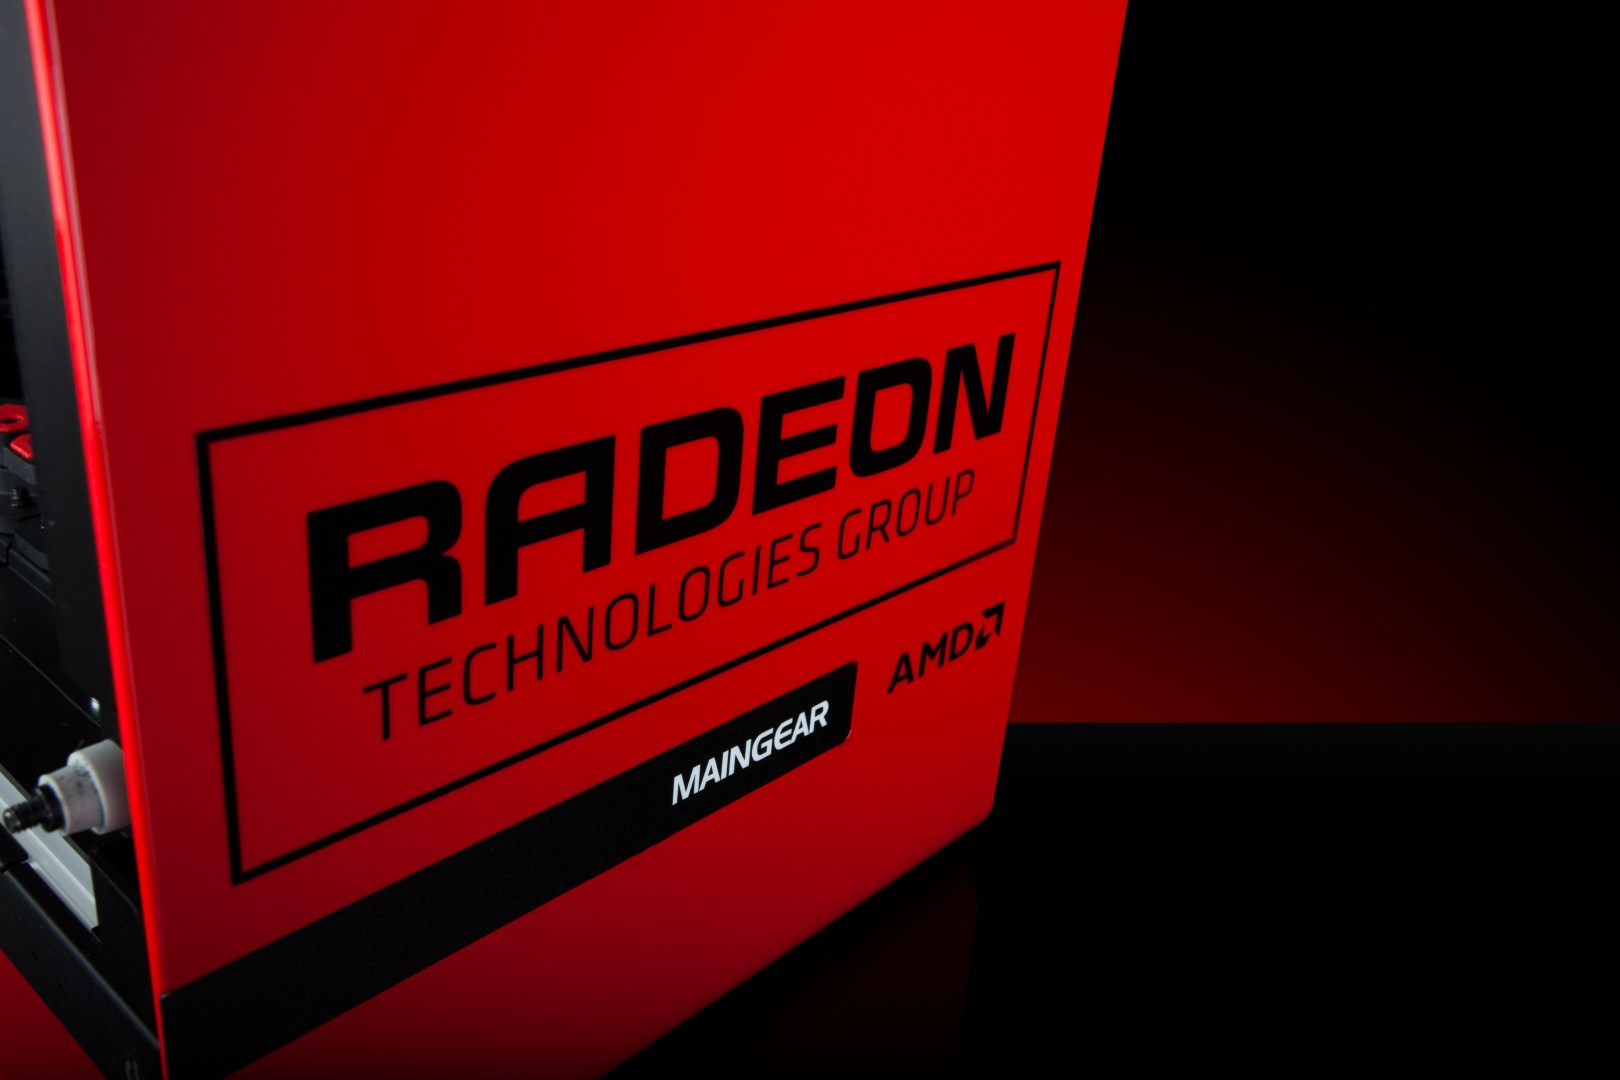 AMD Radeon Pro Duo in MAINGEAR System